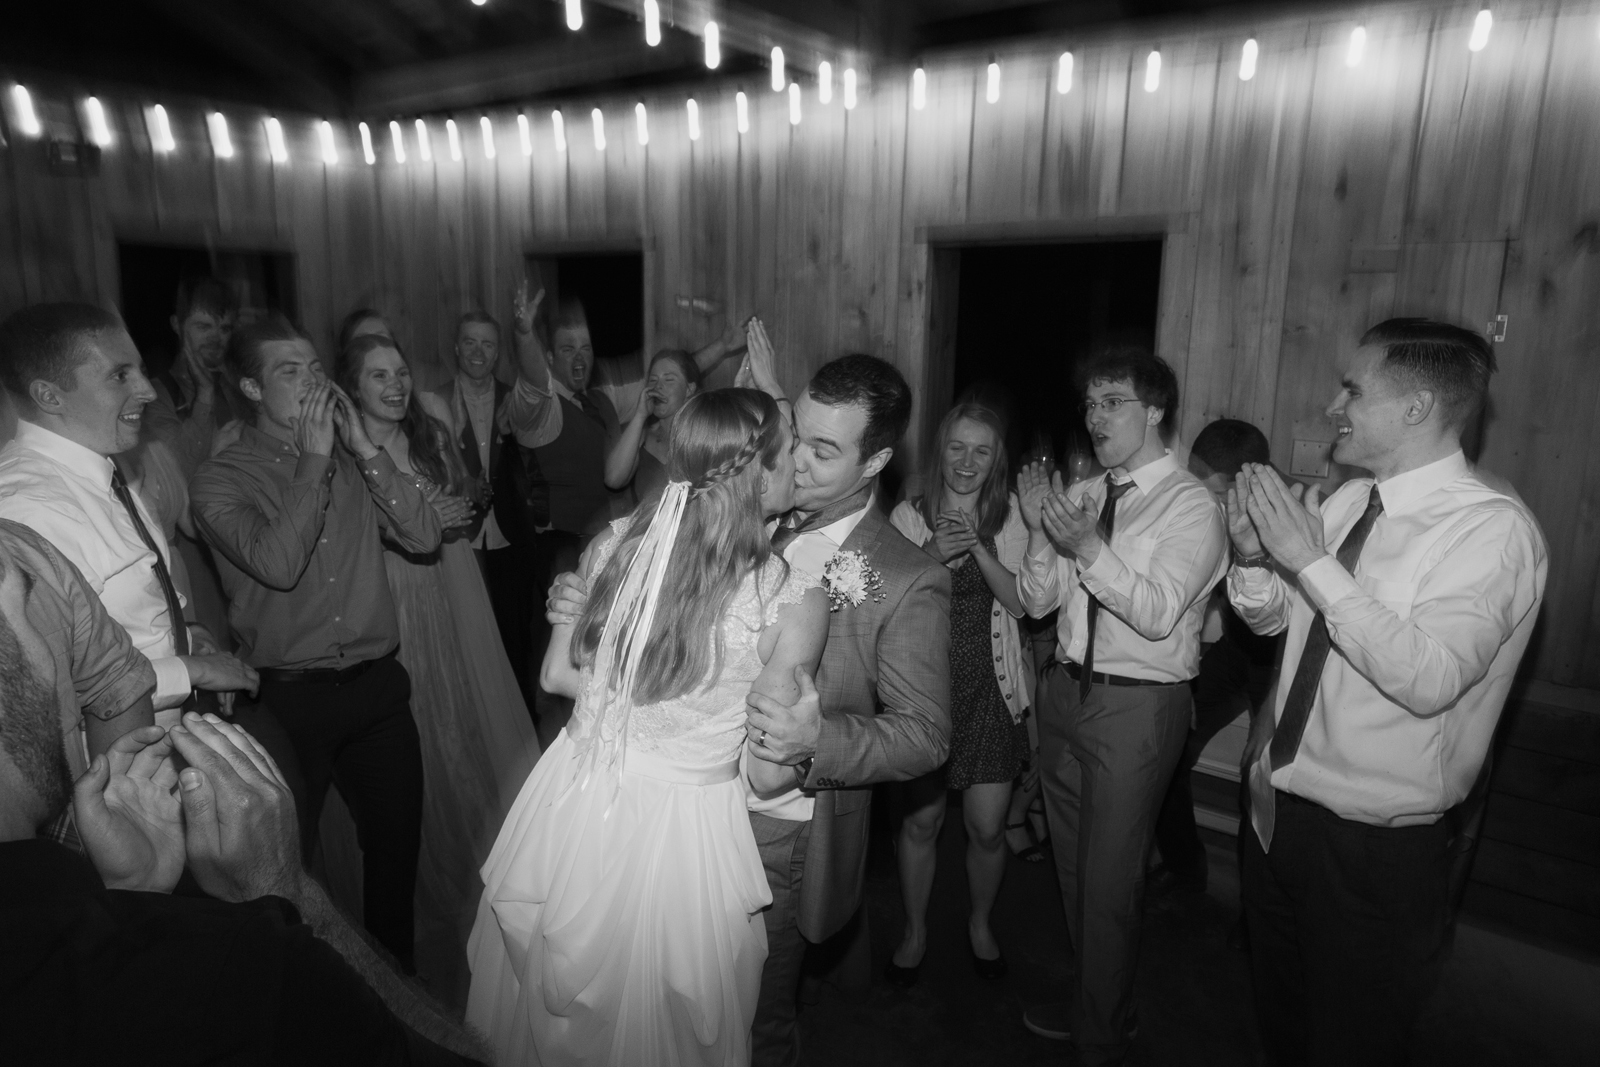 The bride and groom kiss on the dance floor during a wedding reception at Bridal Veil Lakes in Corbett, OR